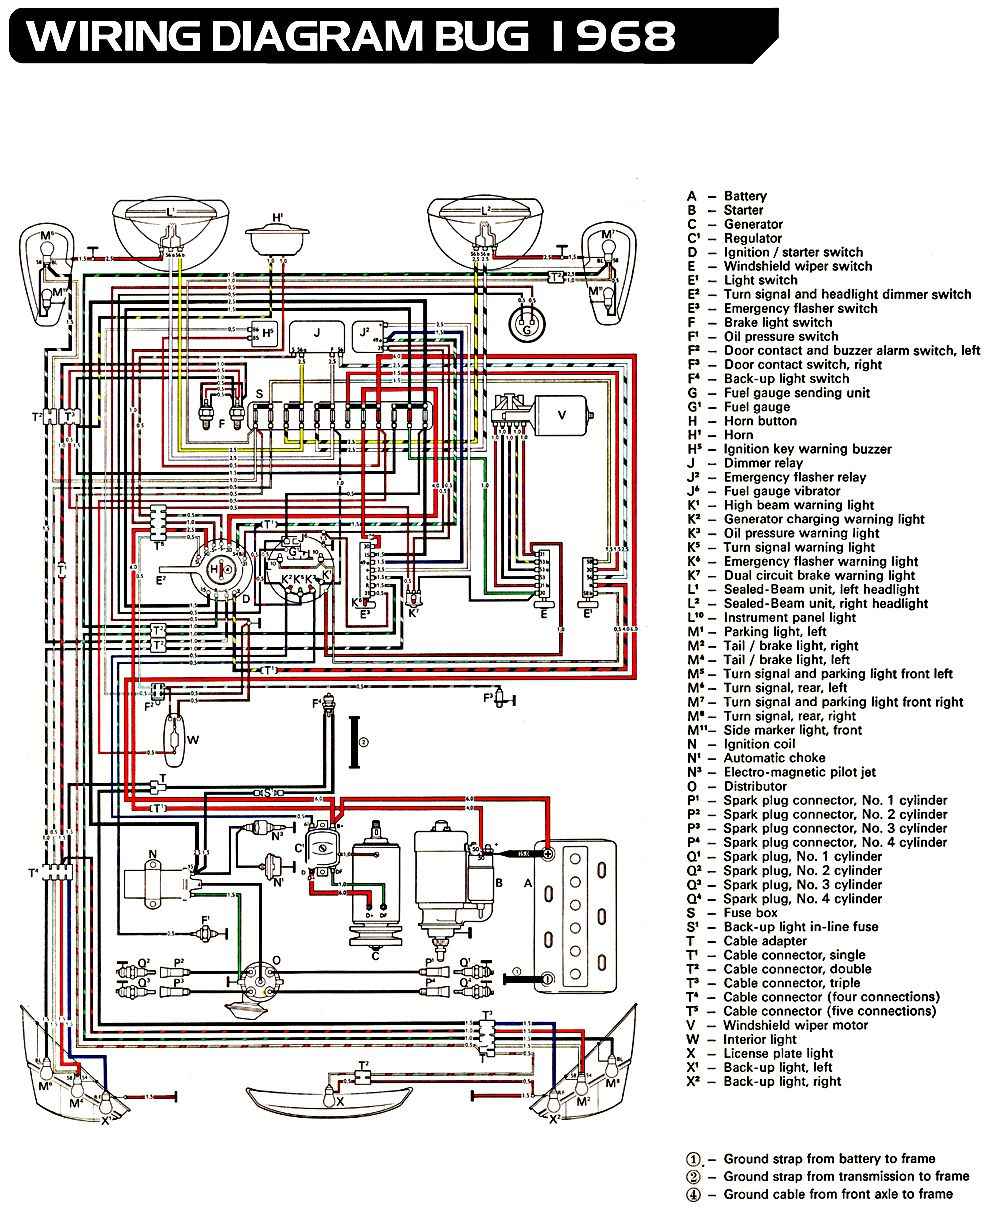 3a1908112d3826270ed5e3be362292bf vw bug ignition wiring diagram 73 vw wiring diagram free vw bug wiring diagram at bayanpartner.co